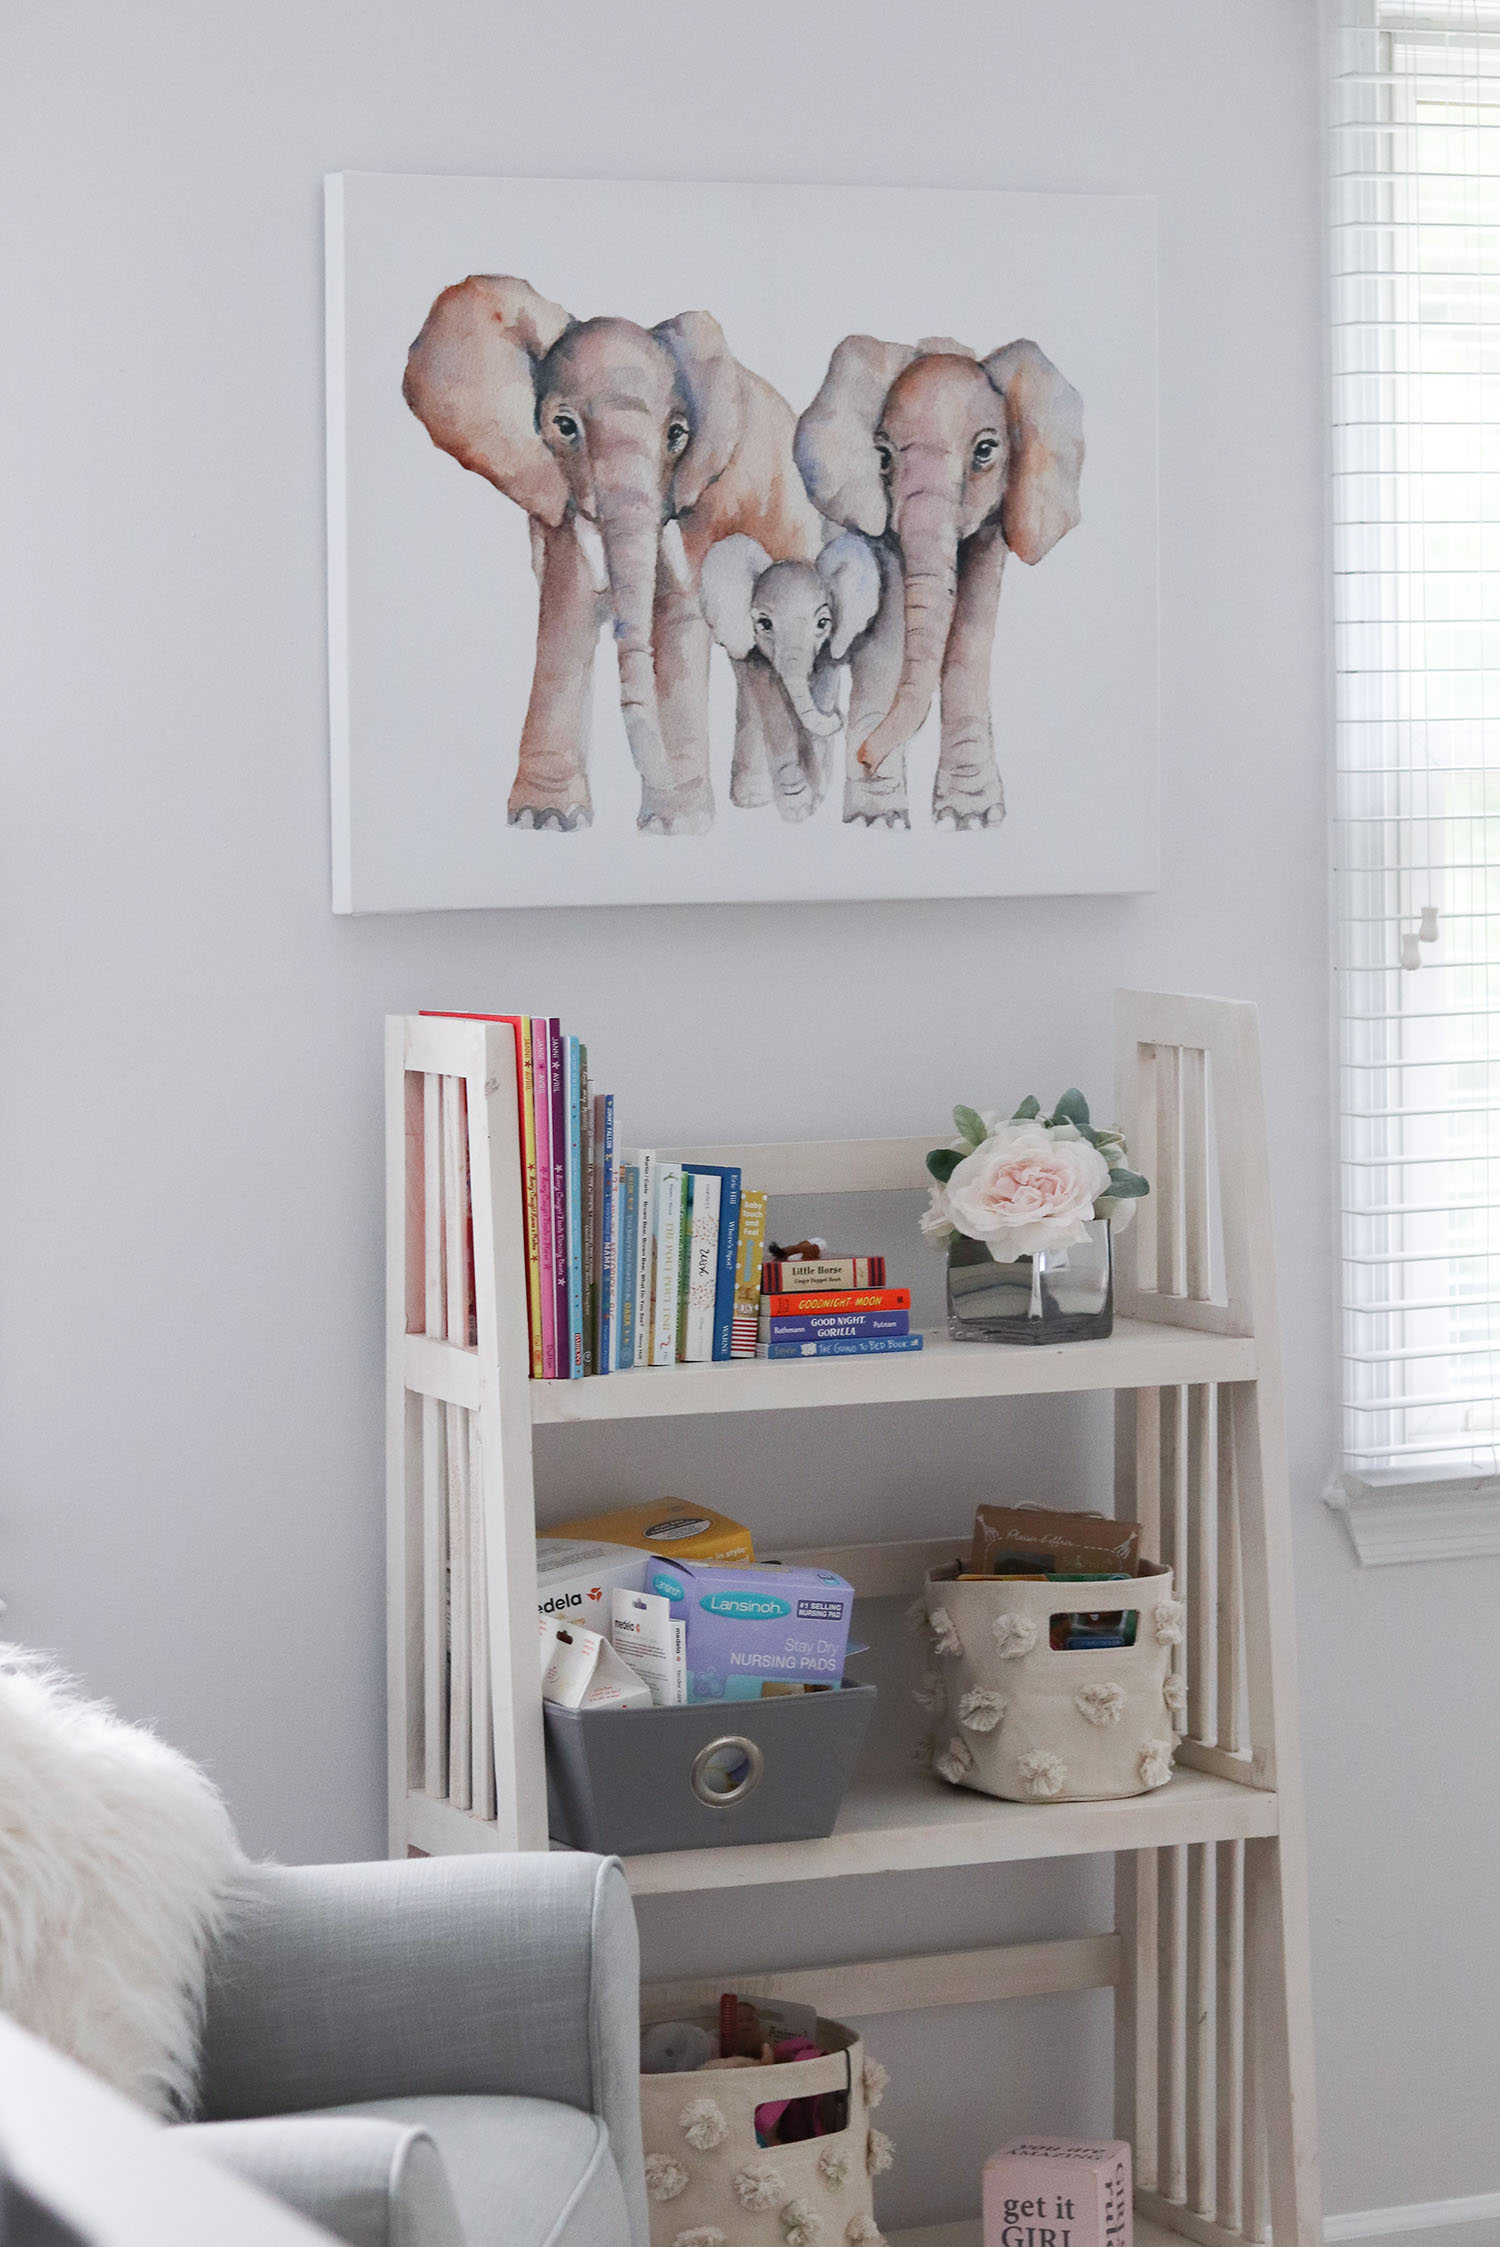 Lavender and Grey Baby Nursery Inspiration and Ideas | Homegoods Elephant Wall Decor and Rustic Bookshelf | Baby Nursery Storage Ideas for Nursing Gear, Baby Books and Toys